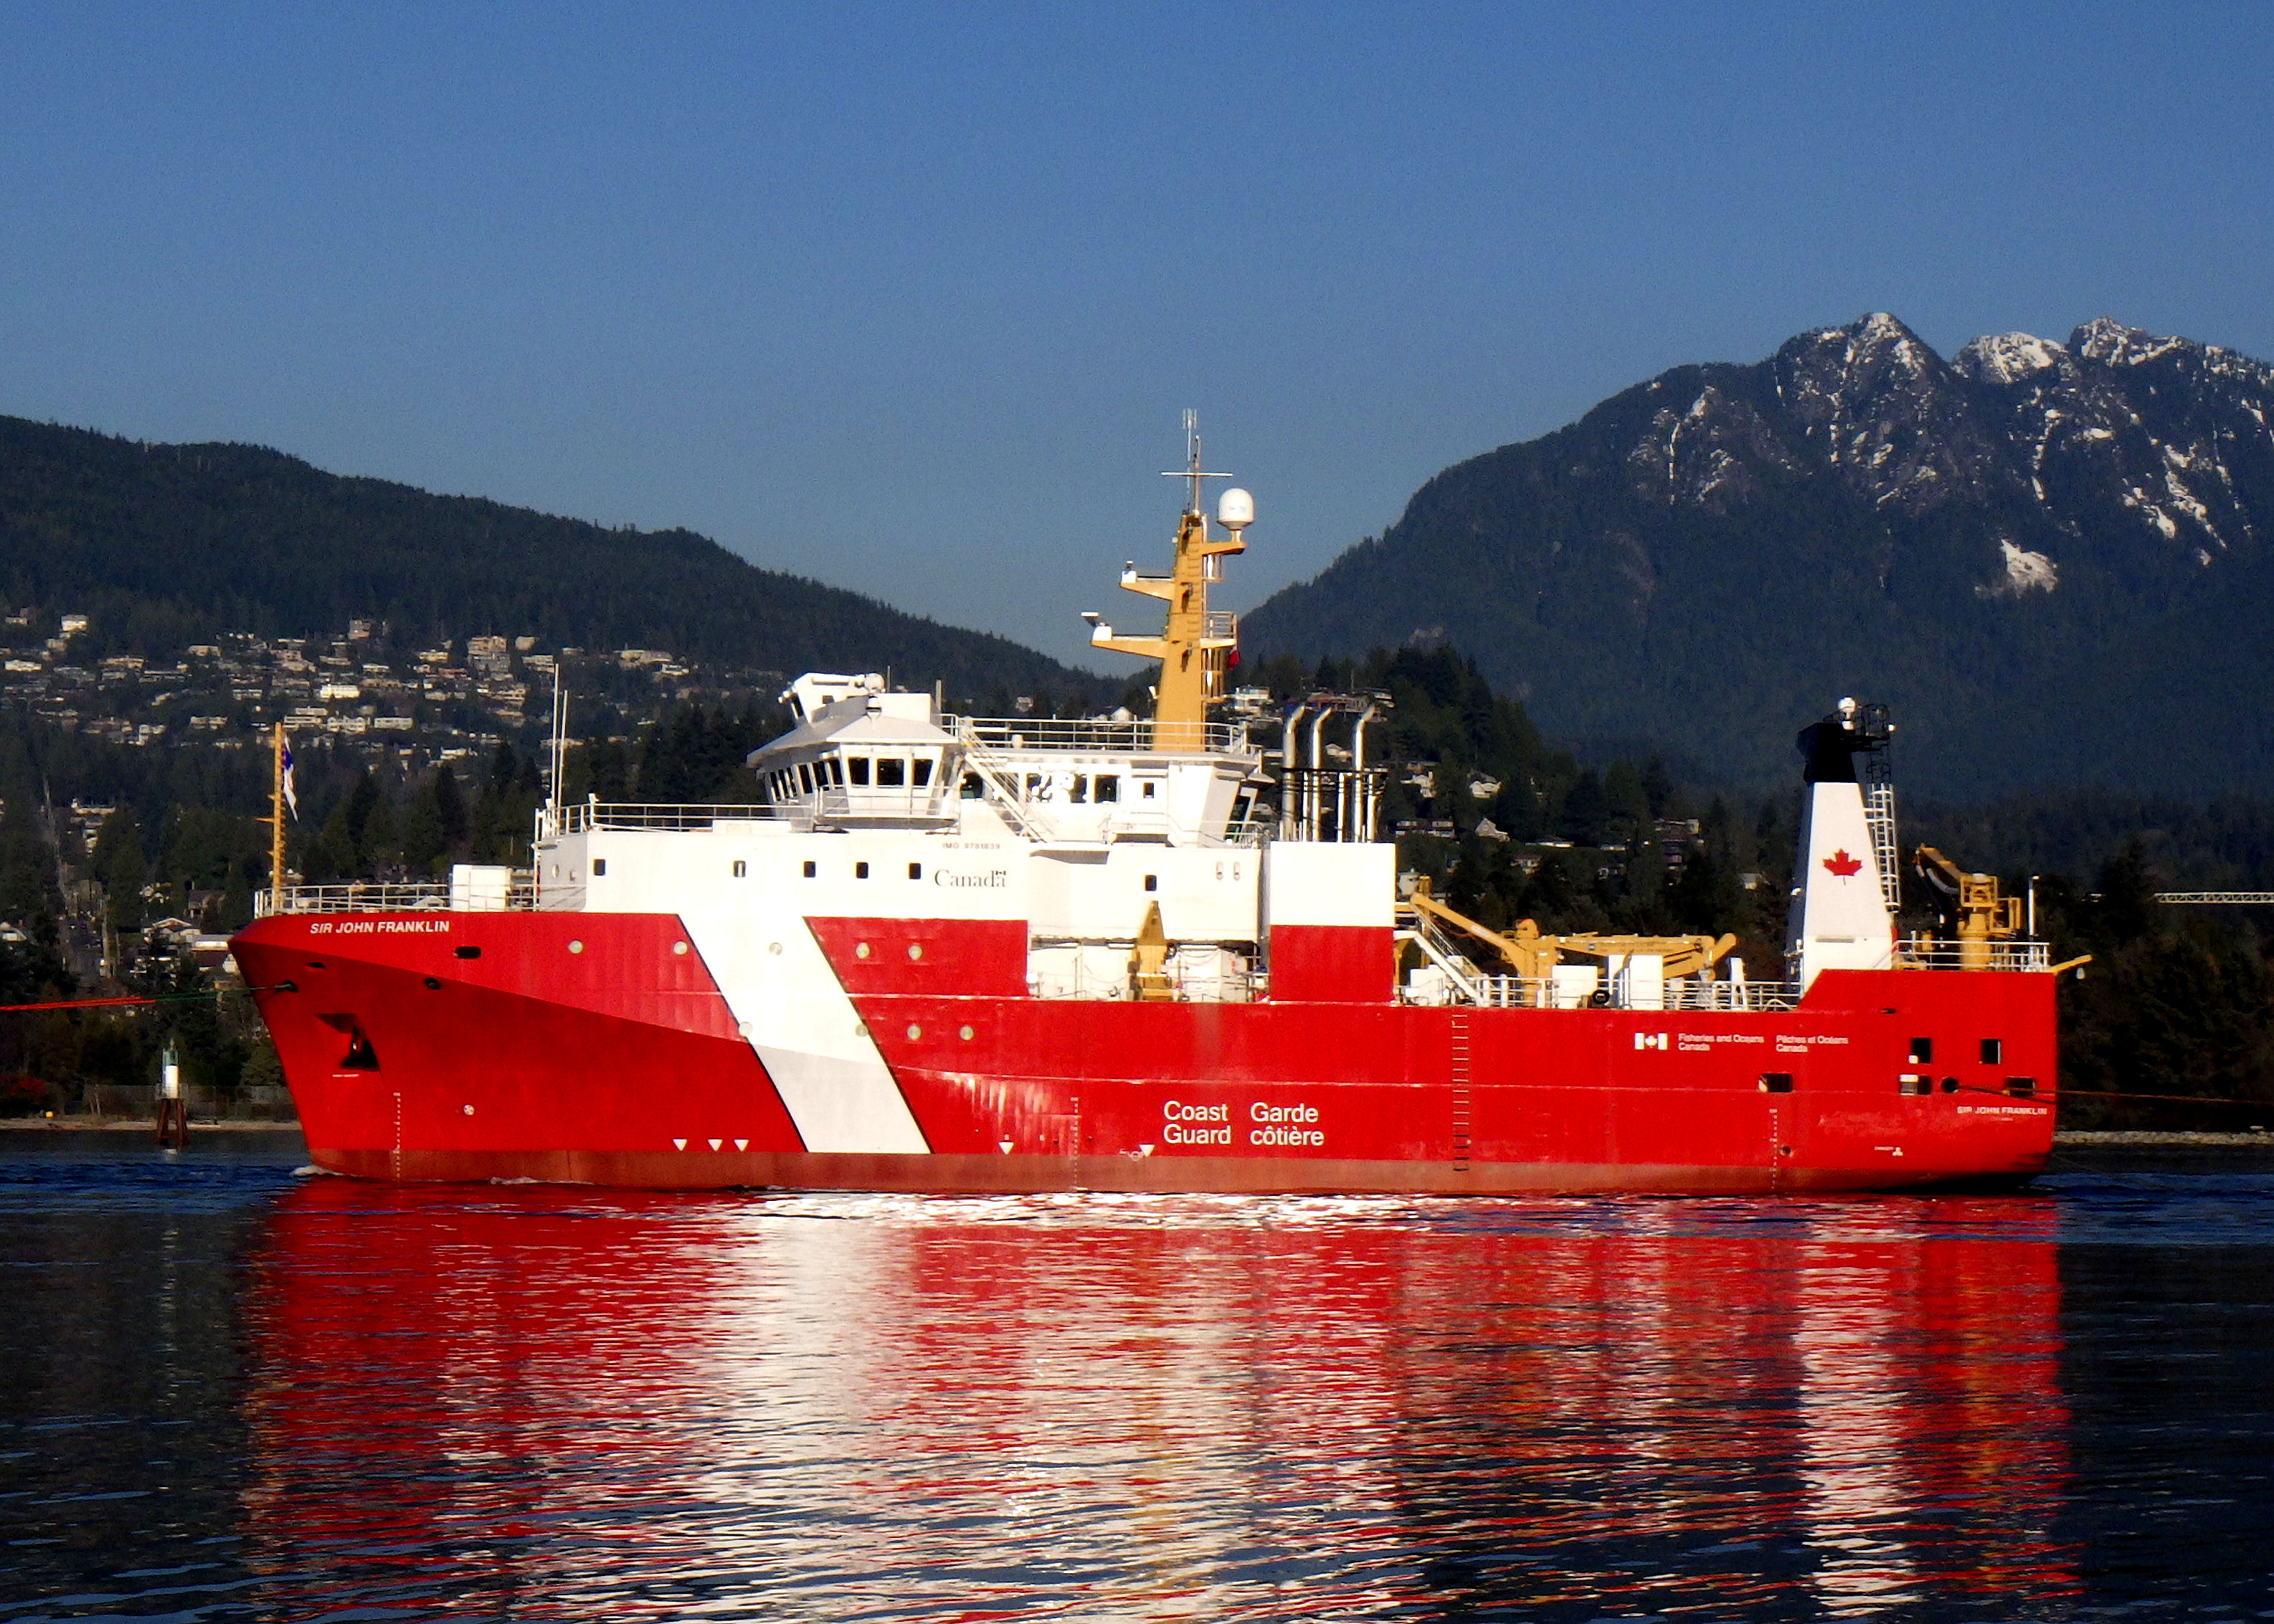 Sir John Franklin under tow Vancouver